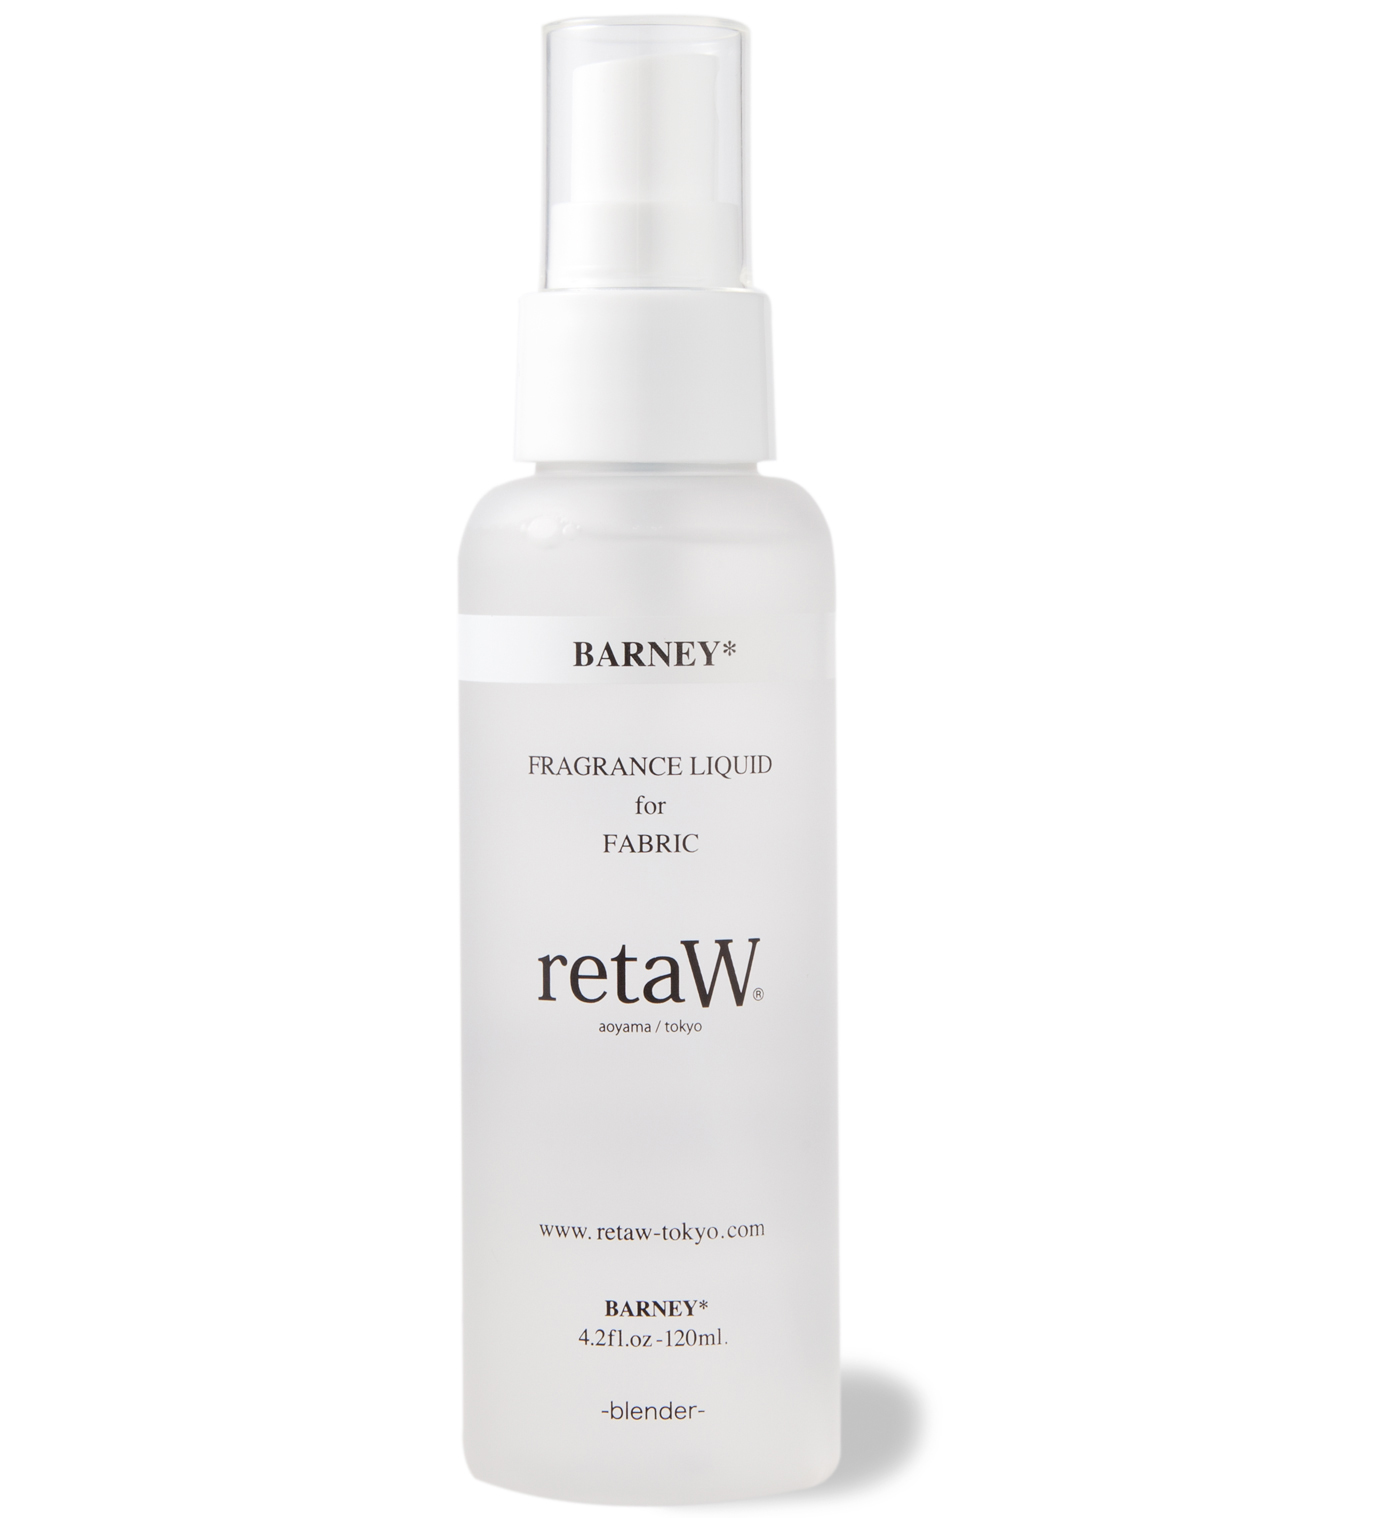 retaW Barney Fragrance Liquid for Fabric